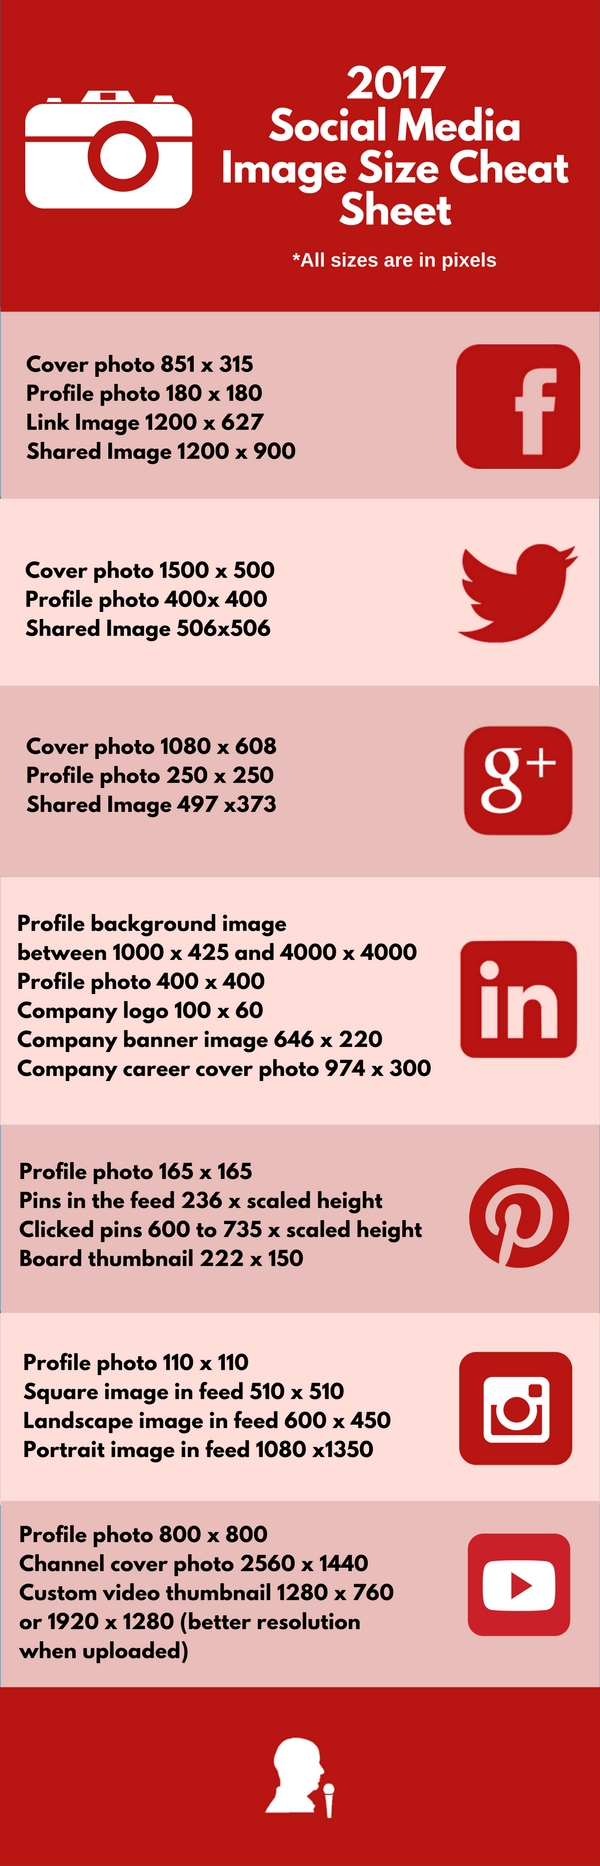 2017 Social Media Image Sizes - Stand Up Comedy Clinic